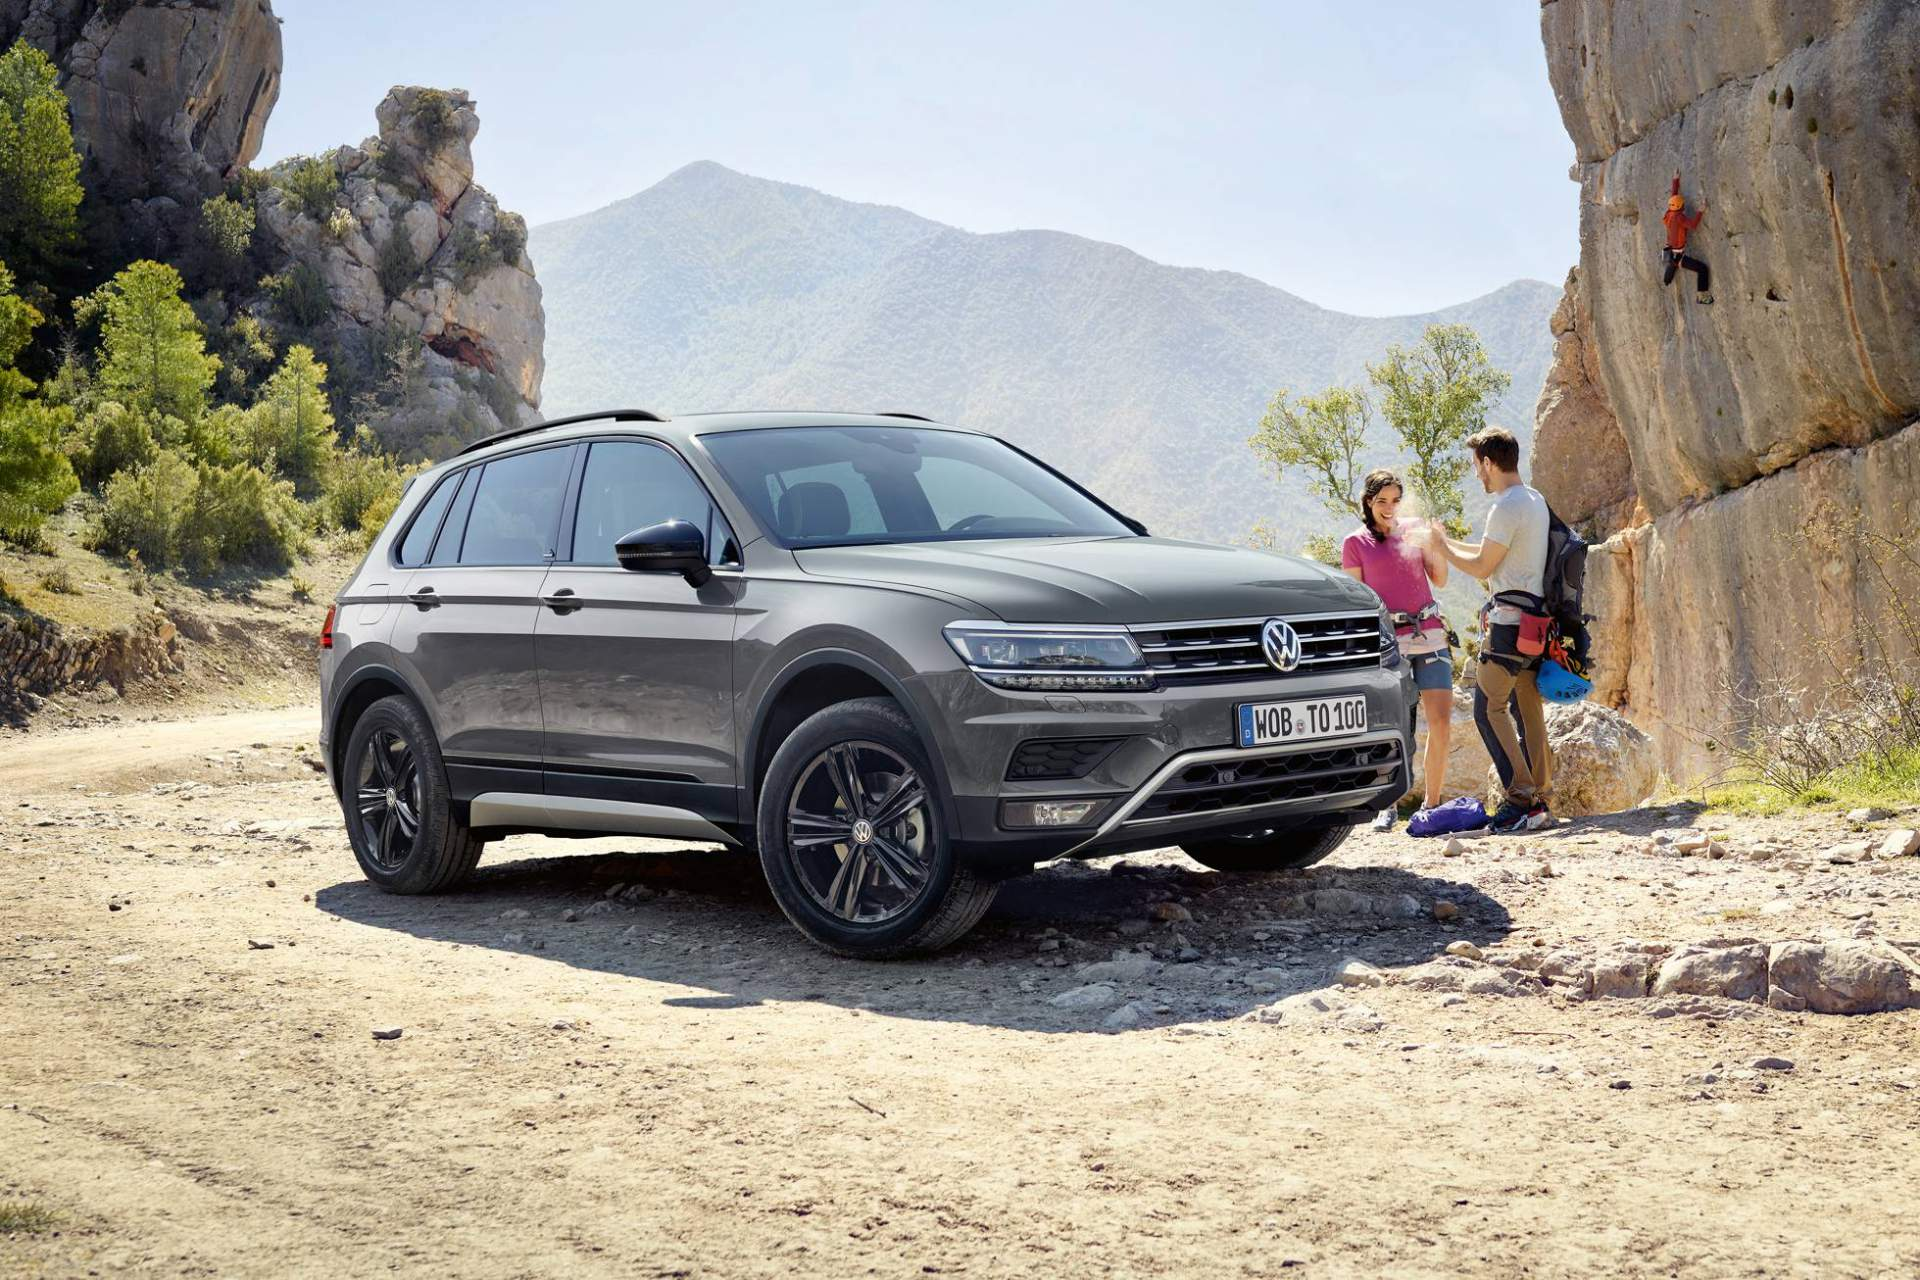 2019 Volkswagen Tiguan Offroad Goes Official At Moscow Auto Show - autoevolution